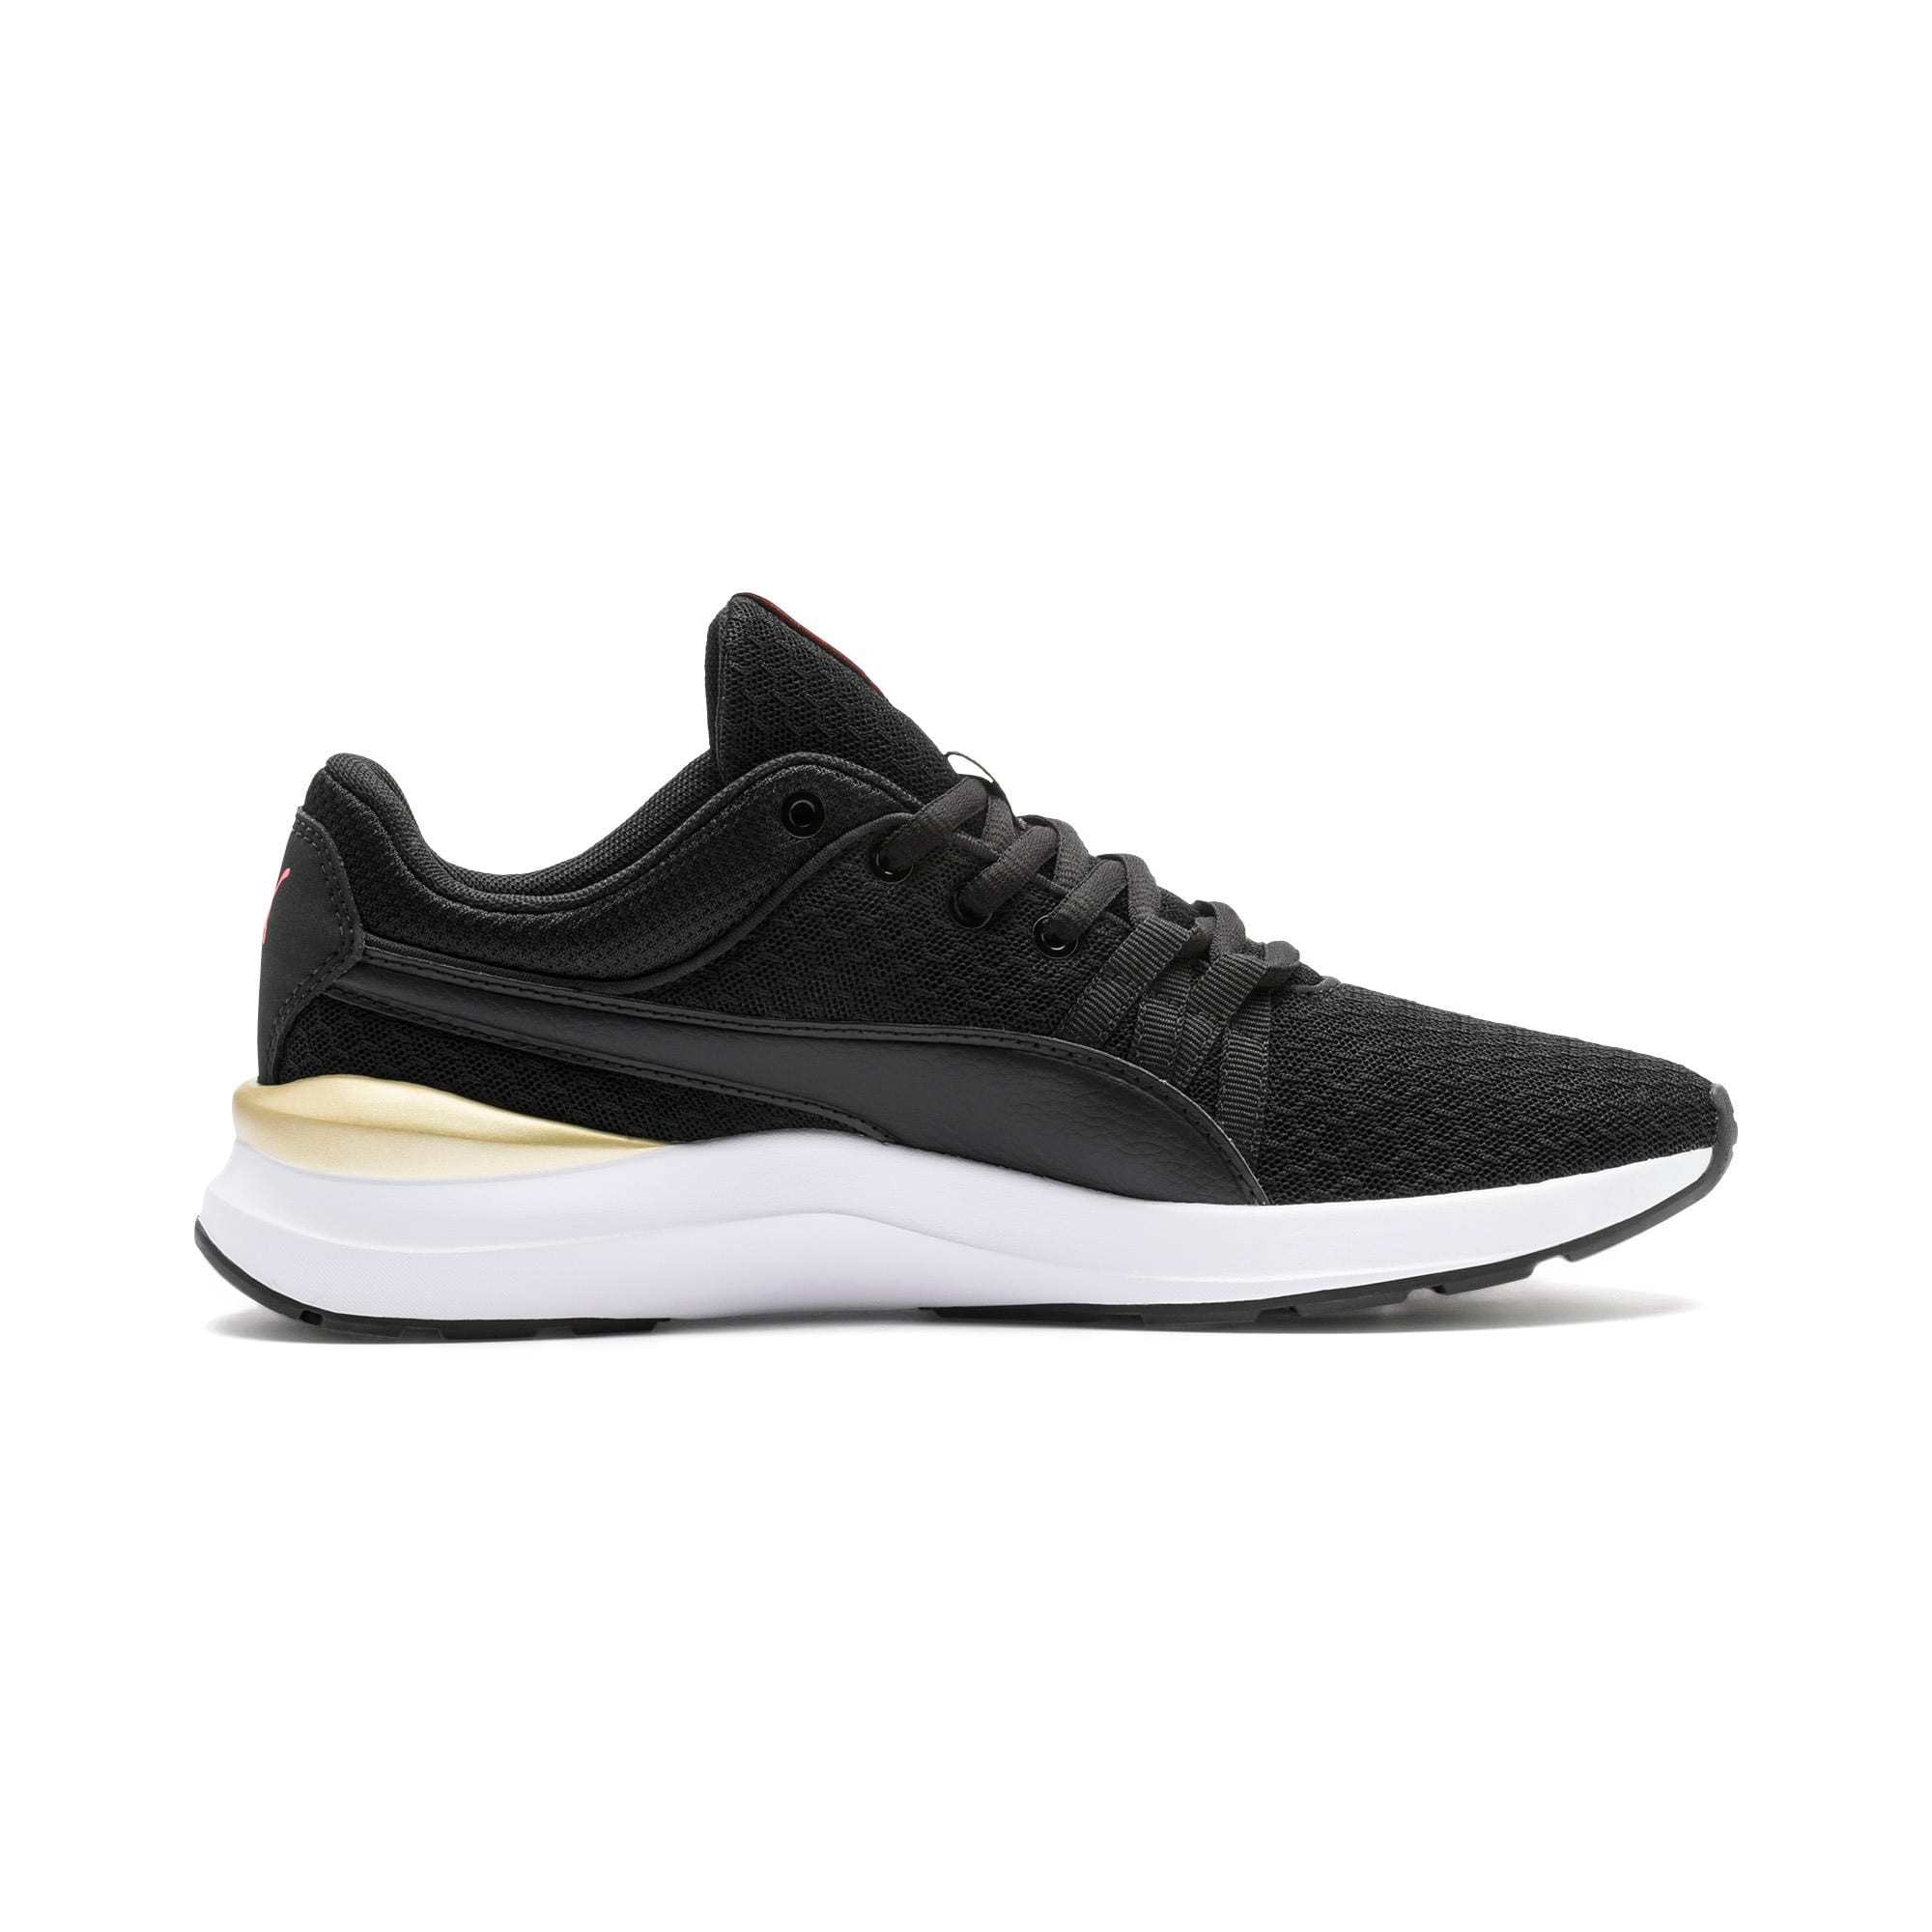 Thumbnail 6 of Adela Trainers, Puma Black-Puma Team Gold, medium